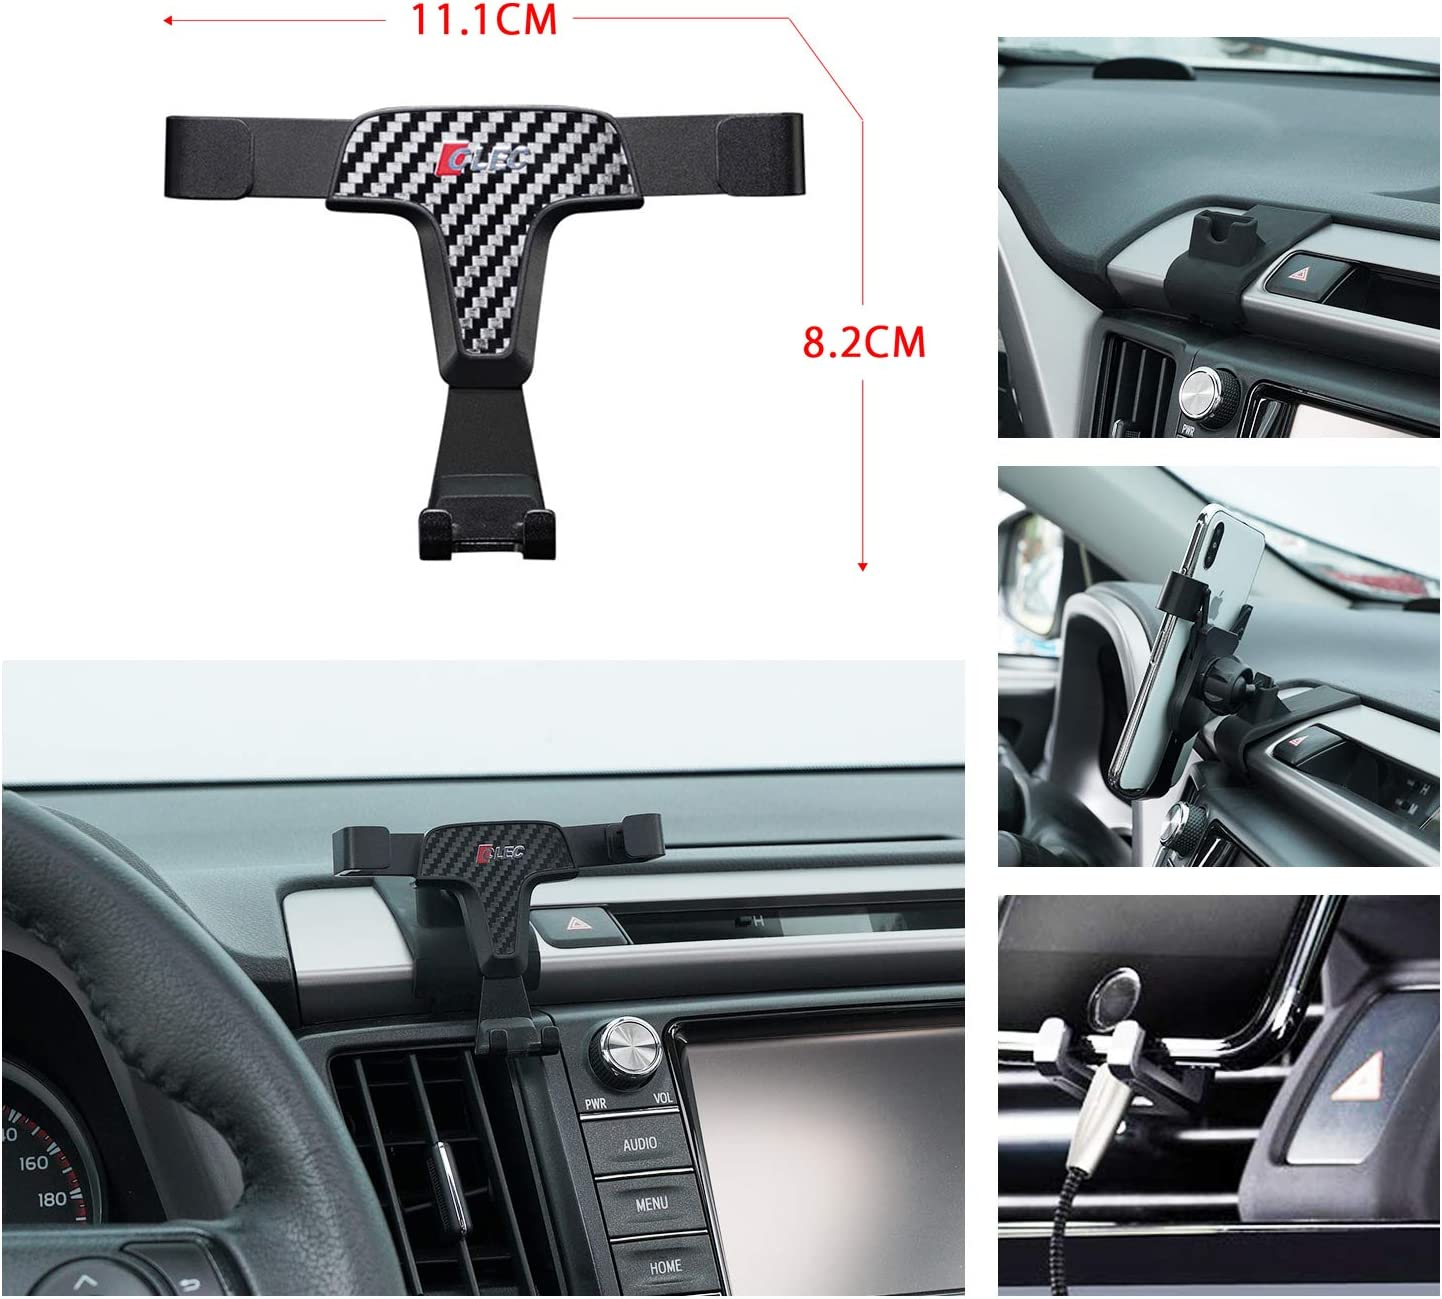 R RUIYA 2016 2017 2018 Toyota RAV4 Smartphone Cell Phone Mount Holder with Adjustable Air Vent Clip Cover Fit for 3.5-6.0 Inches Phone